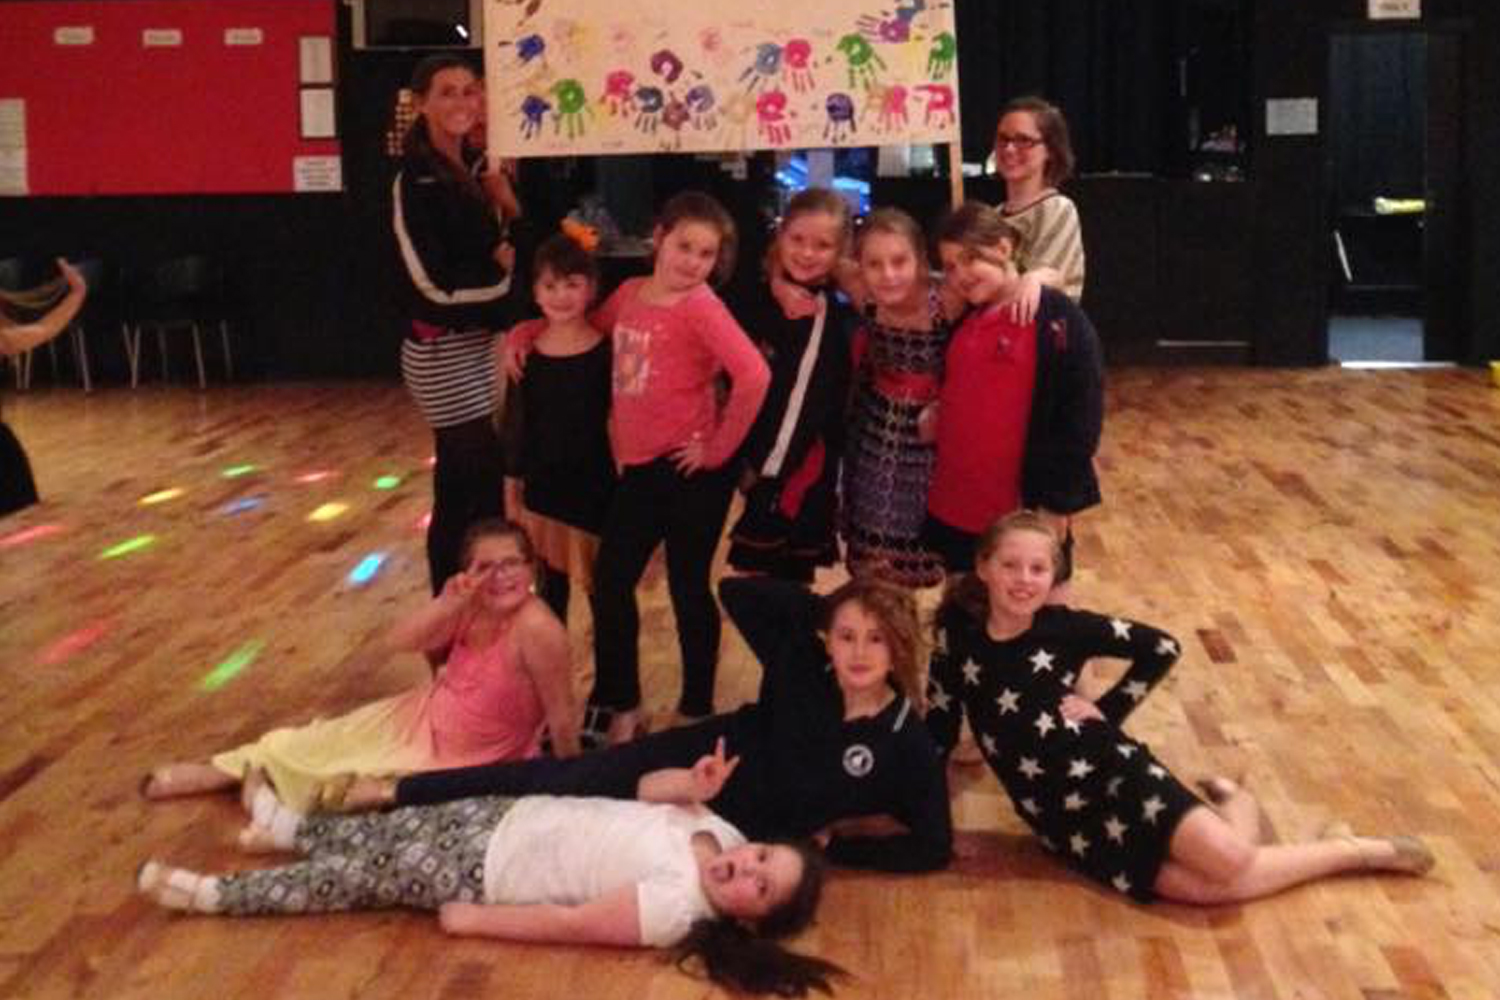 Kids and Teens learn to dance classes